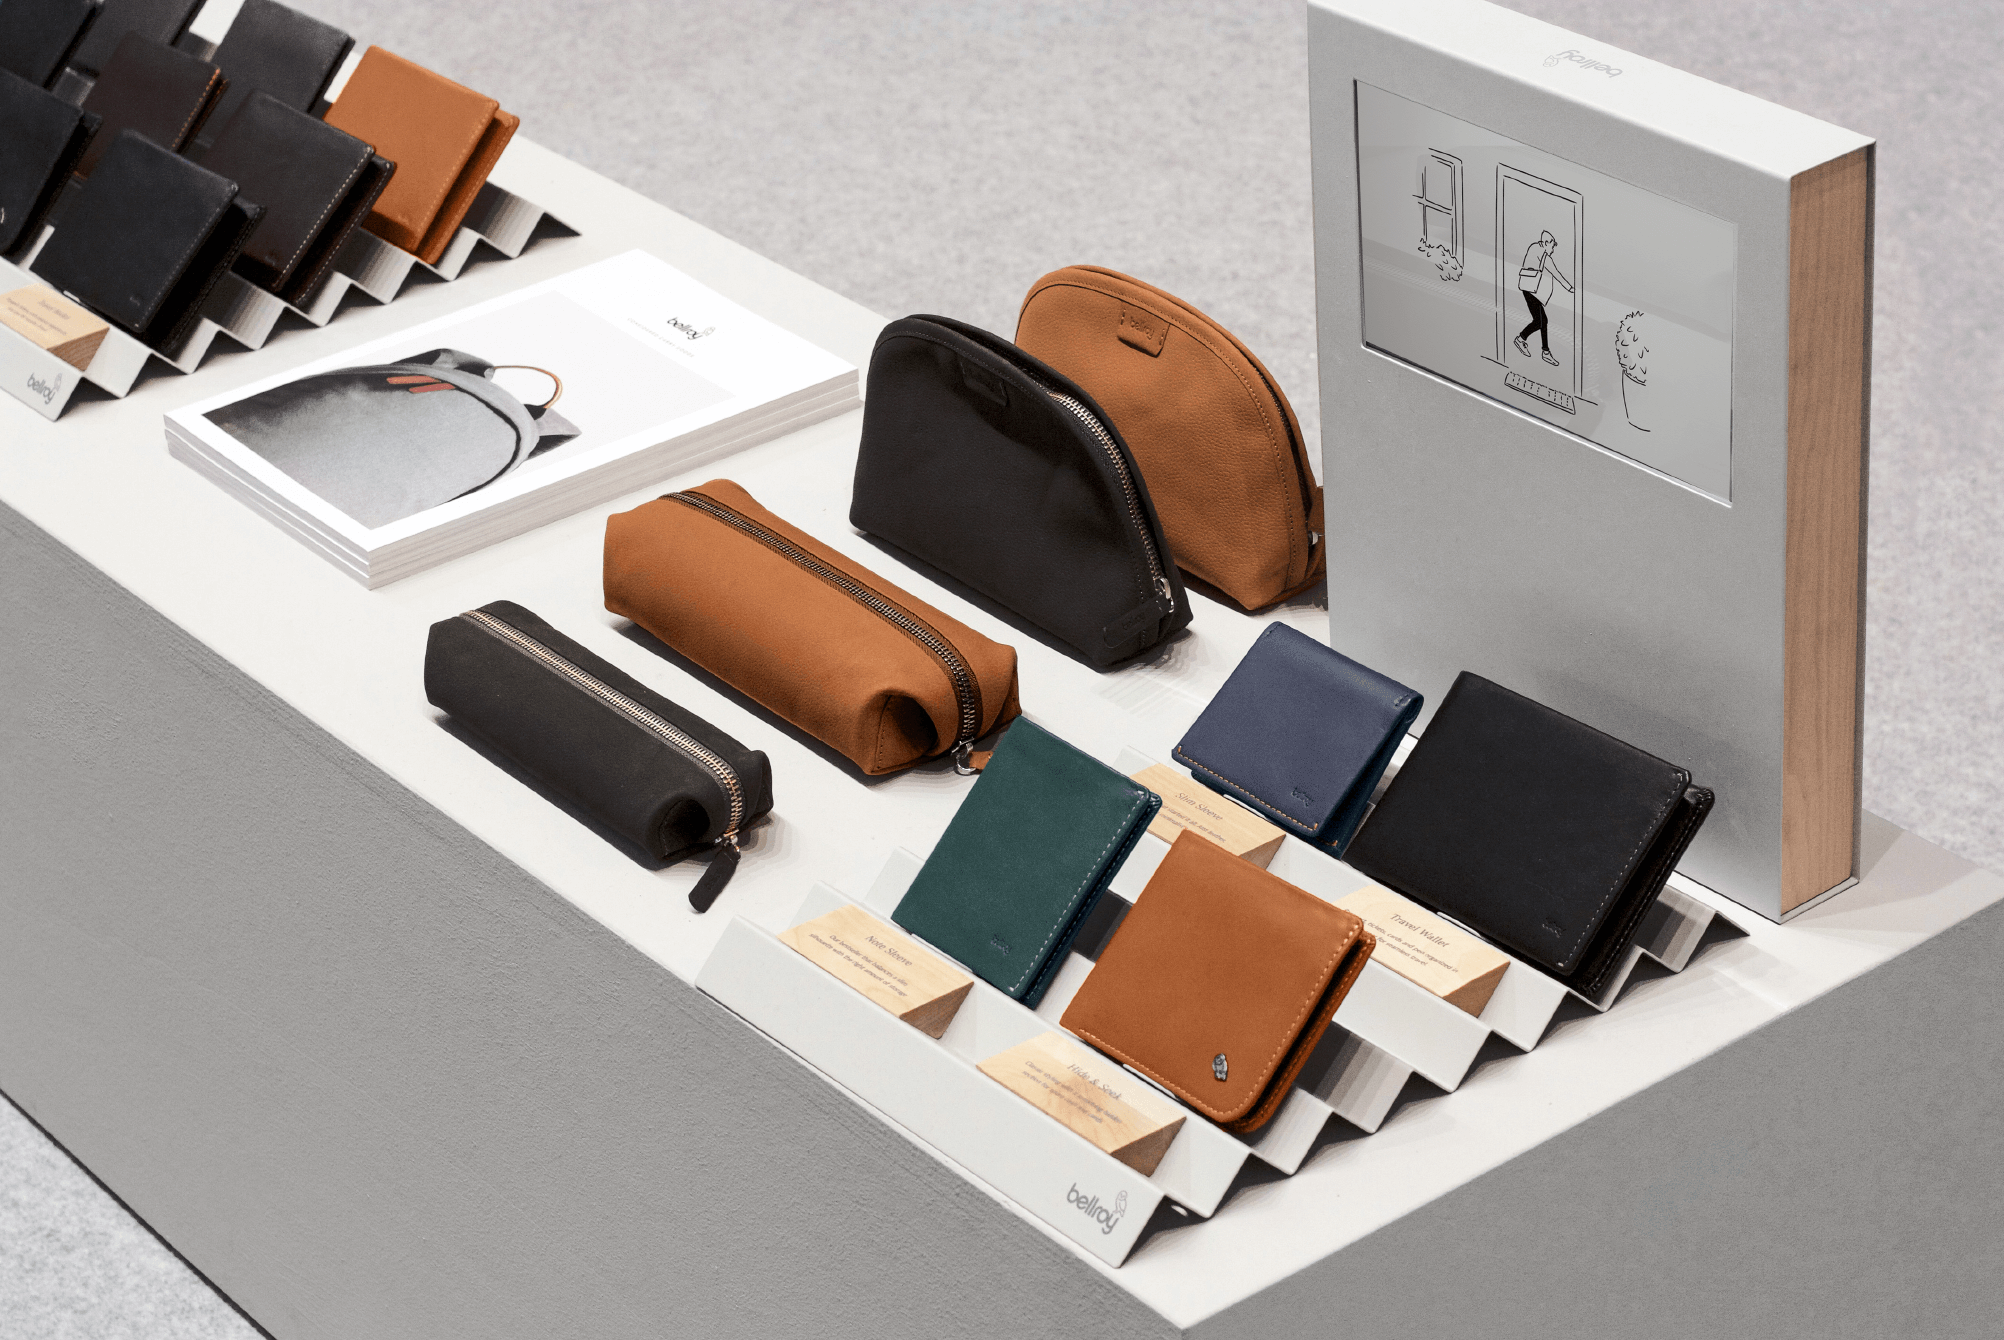 bellroy holding image.png